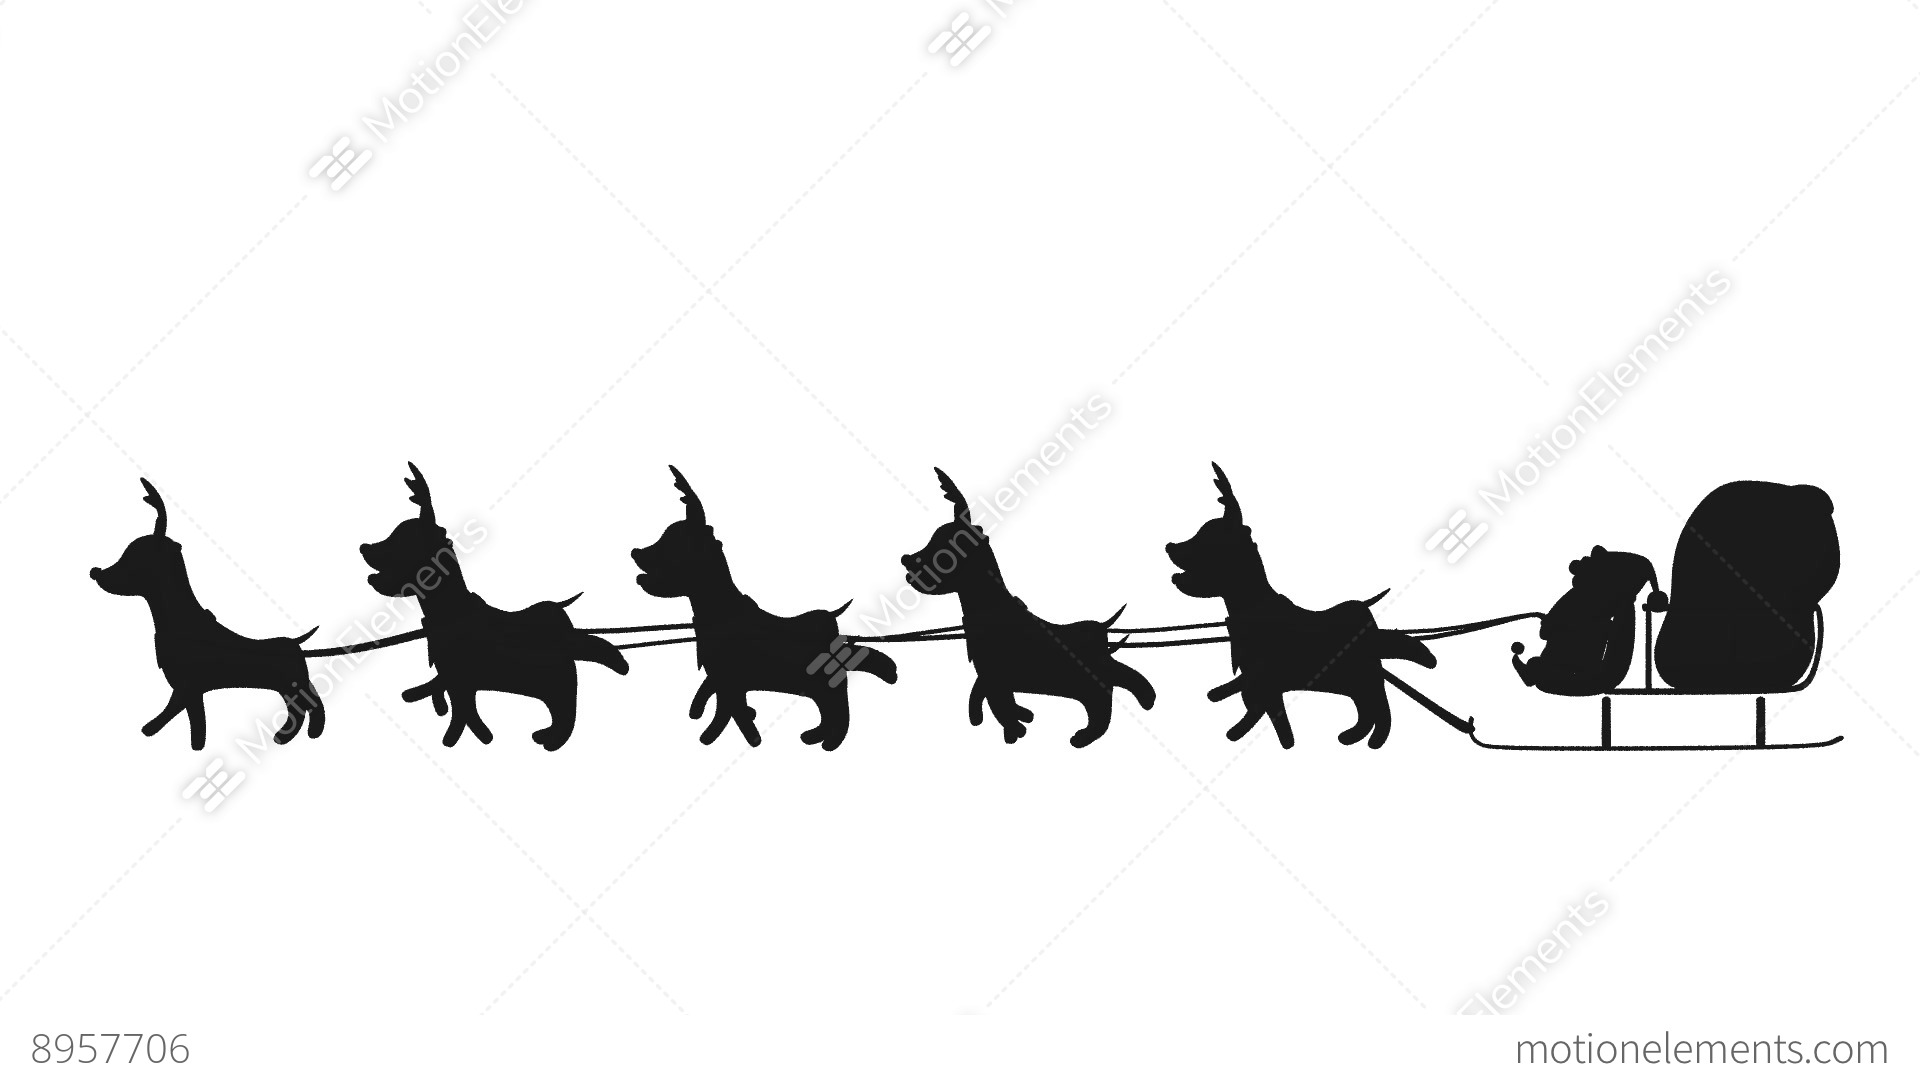 flying santa sleigh by reindeer animation design element